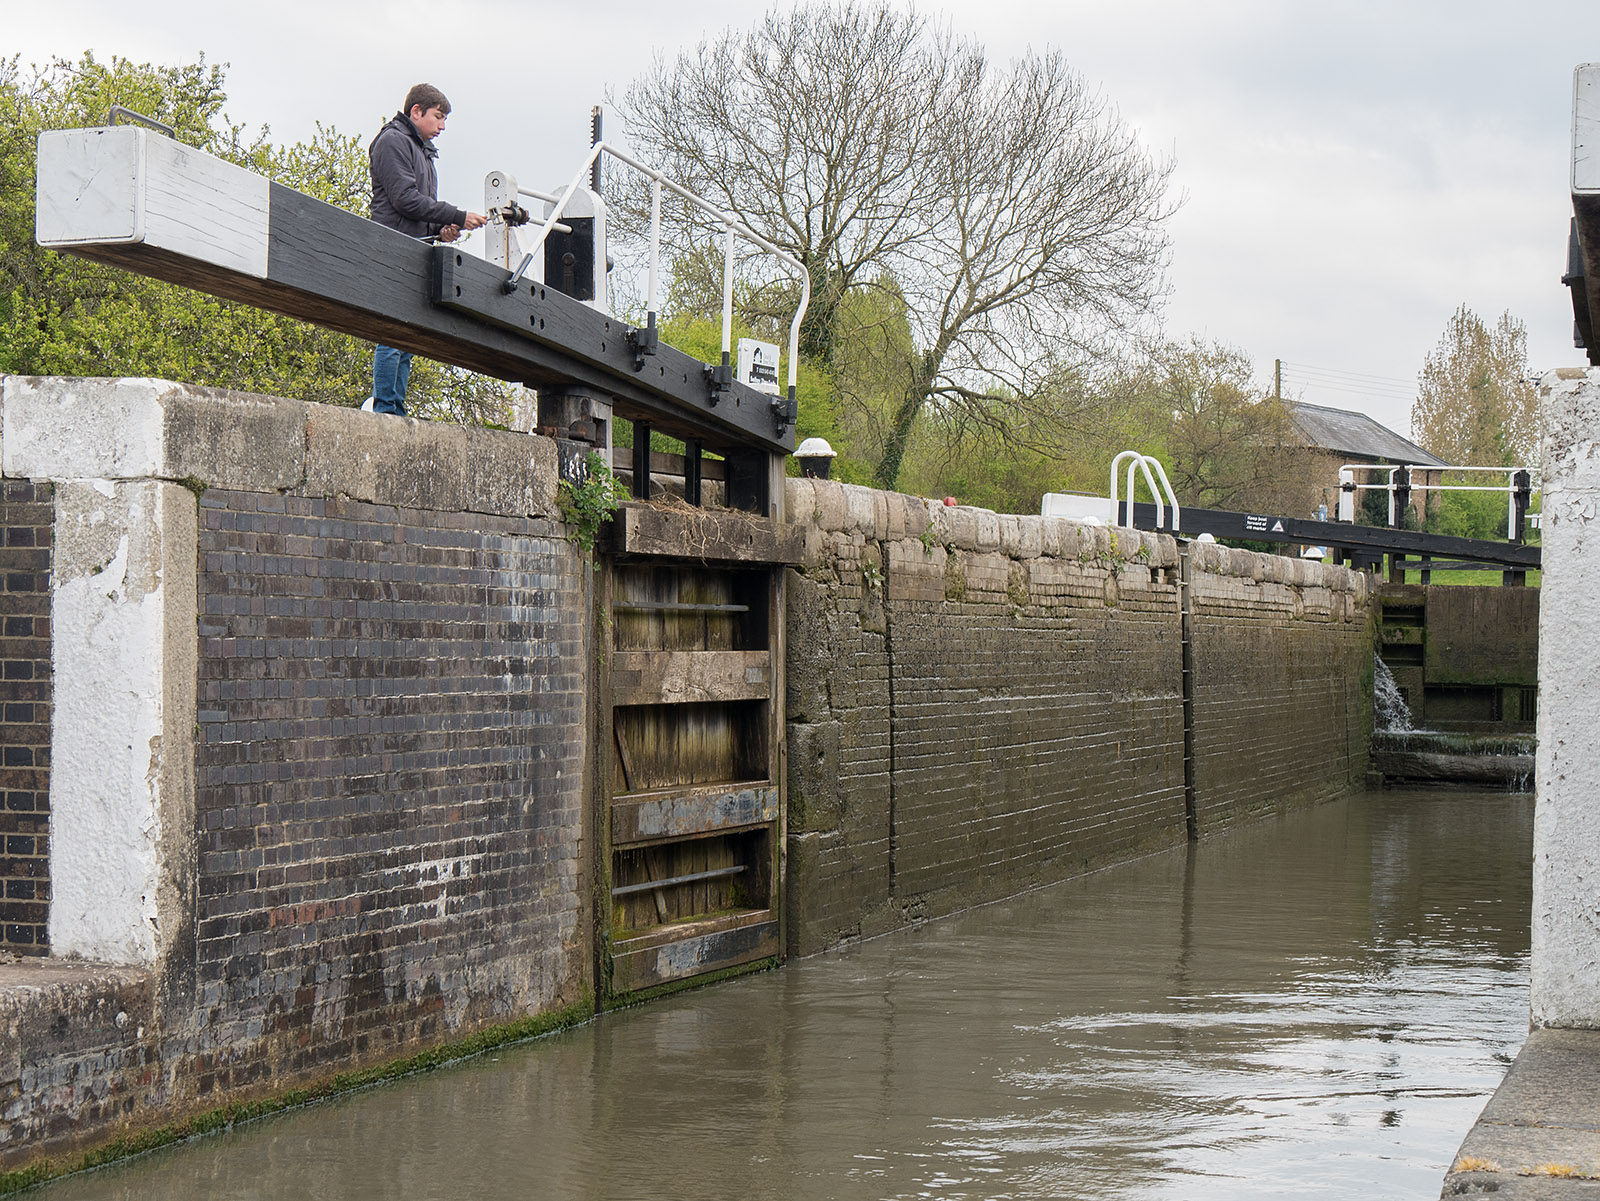 Lowest of the three locks at Soulbury